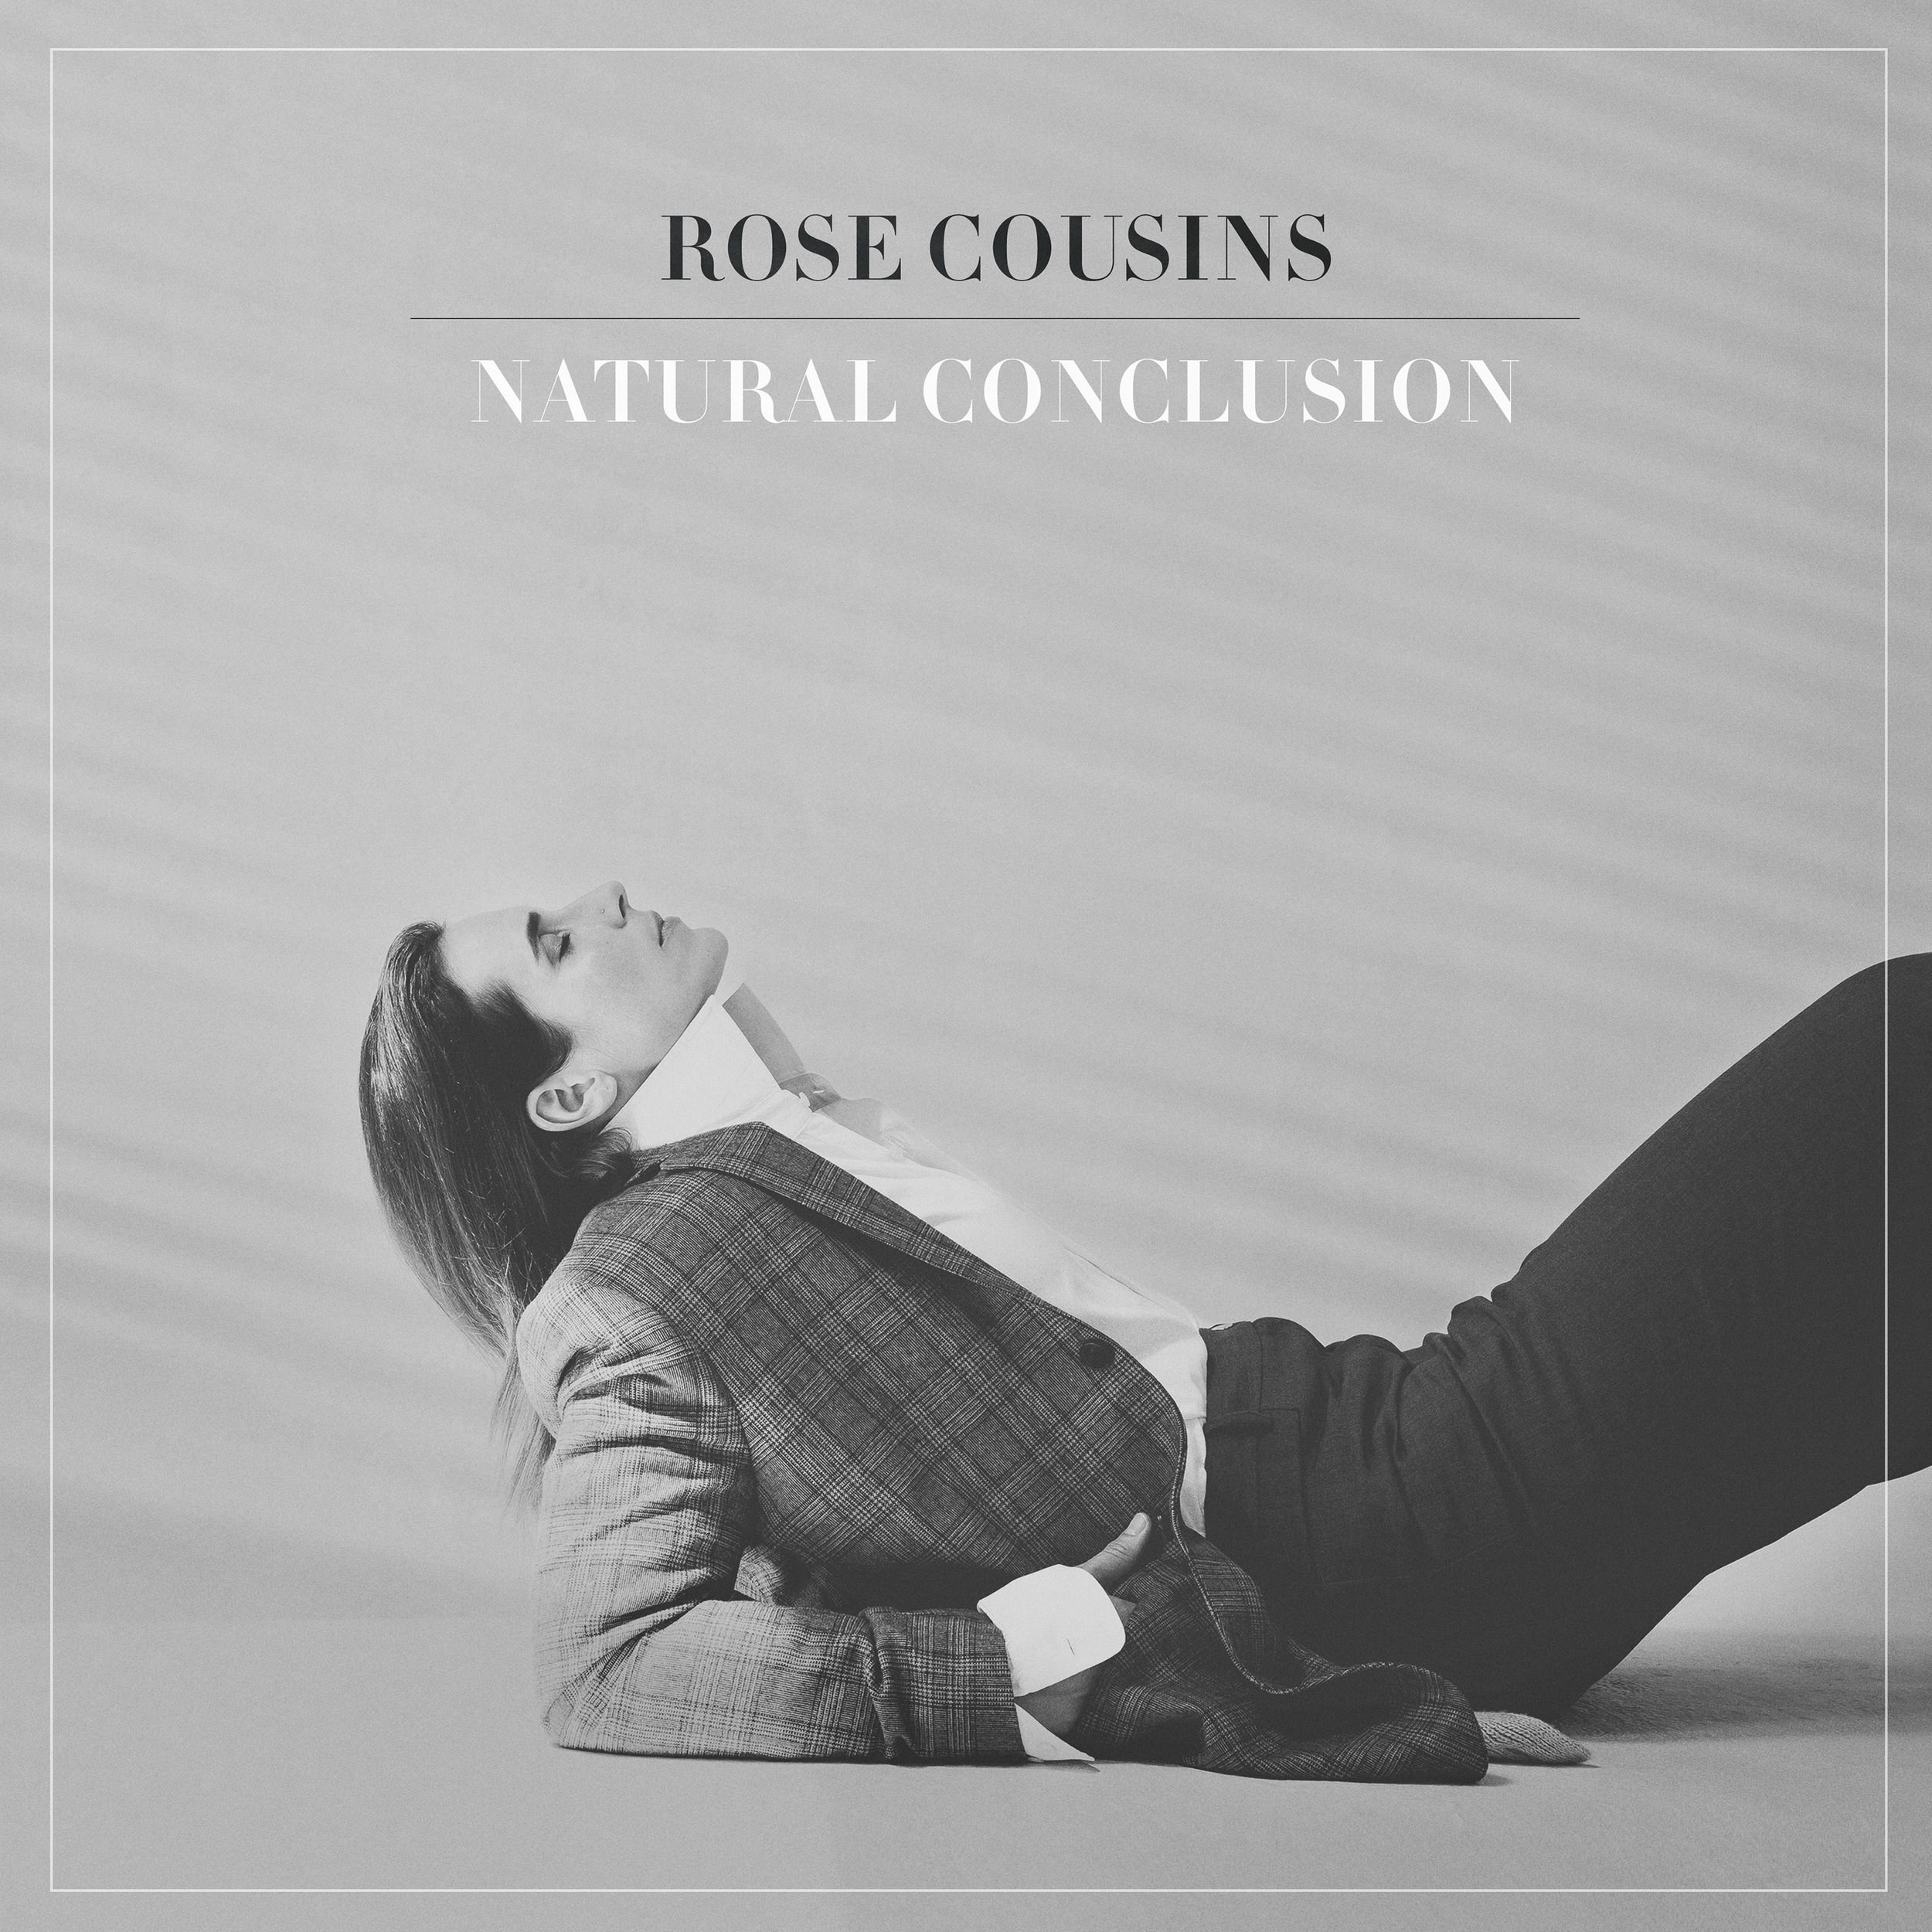 Natural-Conclusion-cover-HiRes.jpg